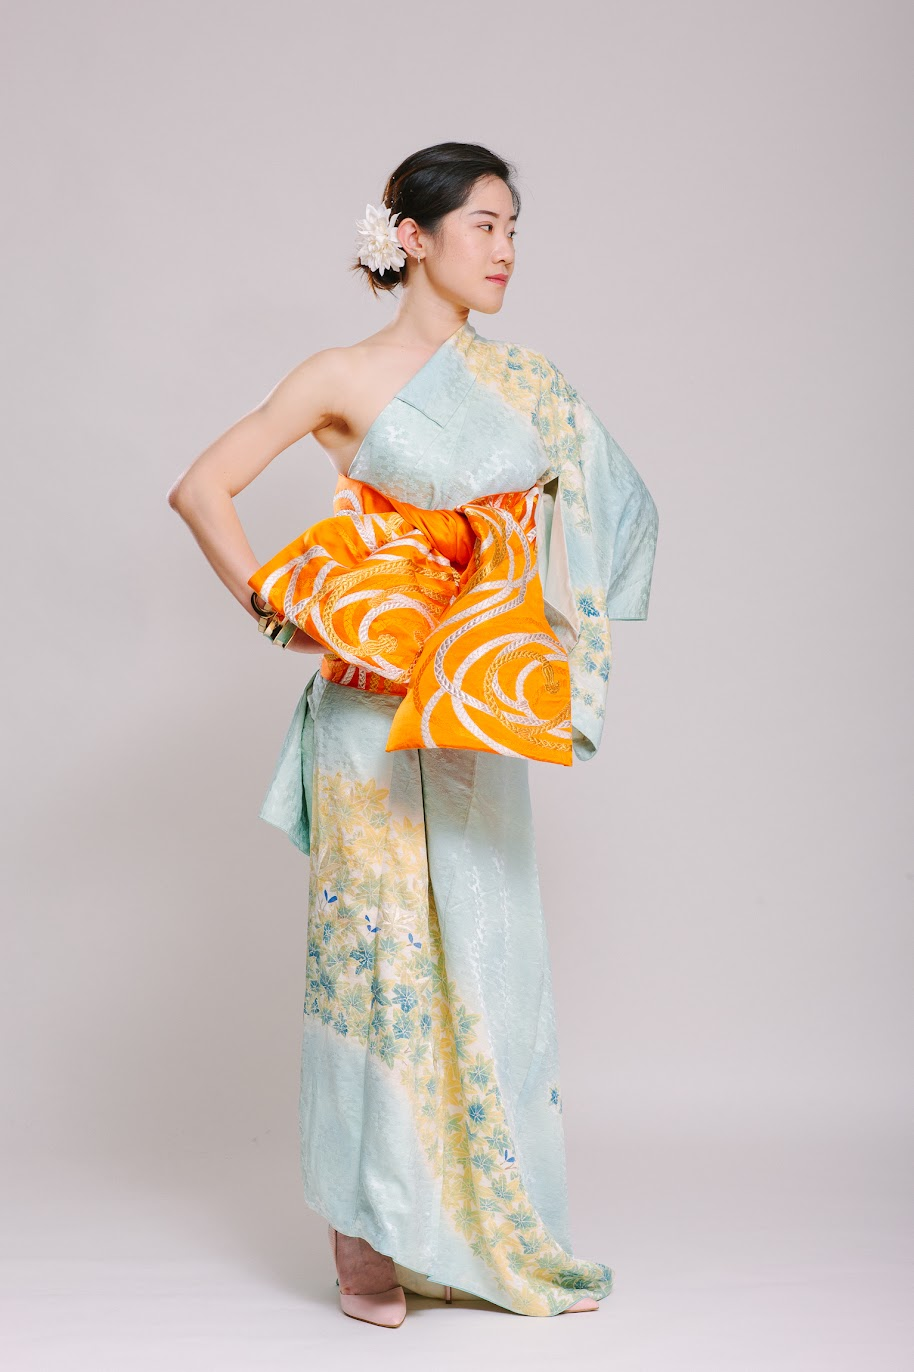 Michelle's Outfit at Kimono Styling Party - FAFAFOOM.com